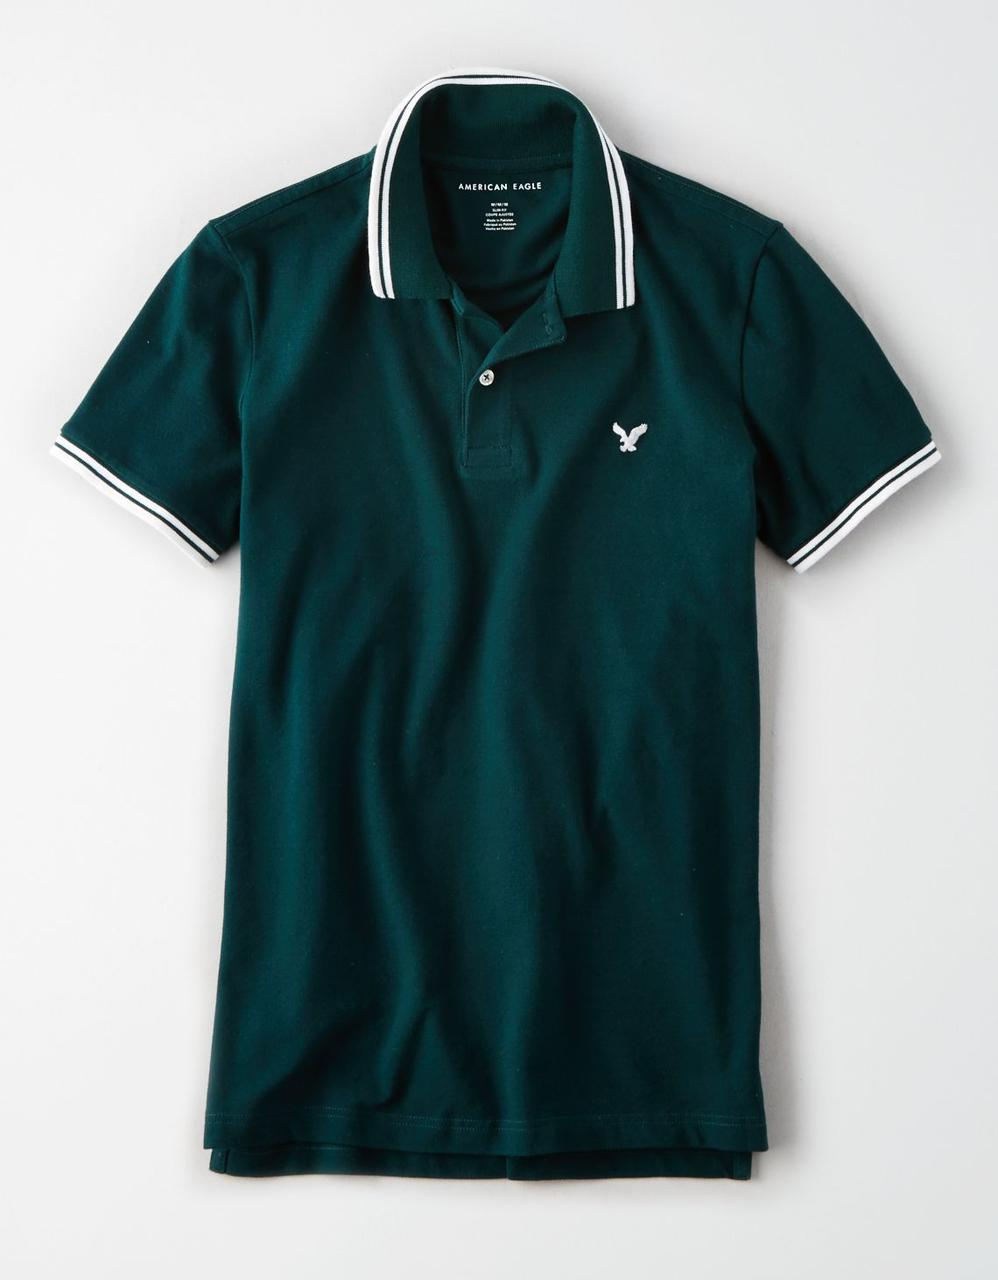 720ef47f American Eagle Polo T-Shirts, AE TIPPED STRETCH PIQUE LOGO POLO for ...